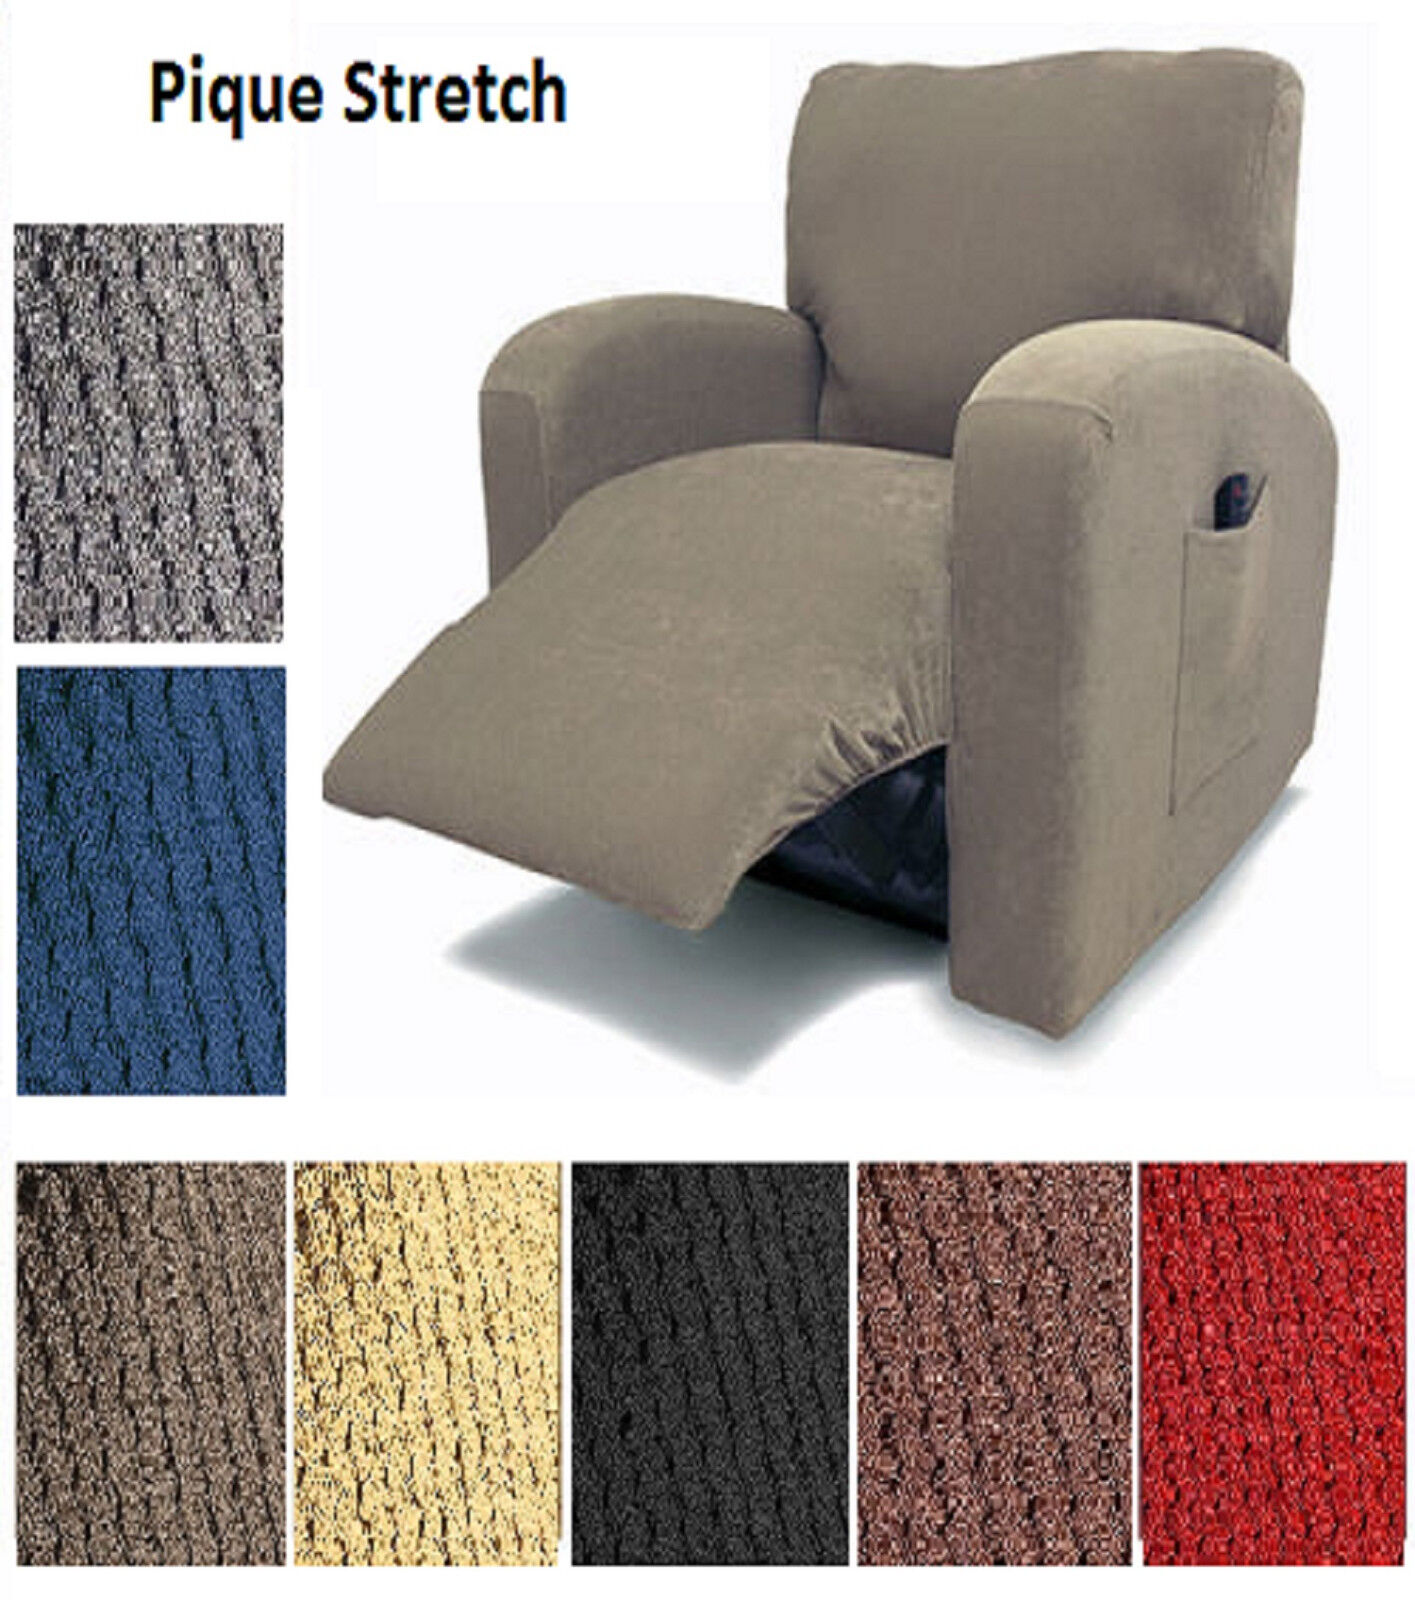 Pique Stretch Fit Furniture Chair Recliner Lazy Boy Cover Sl